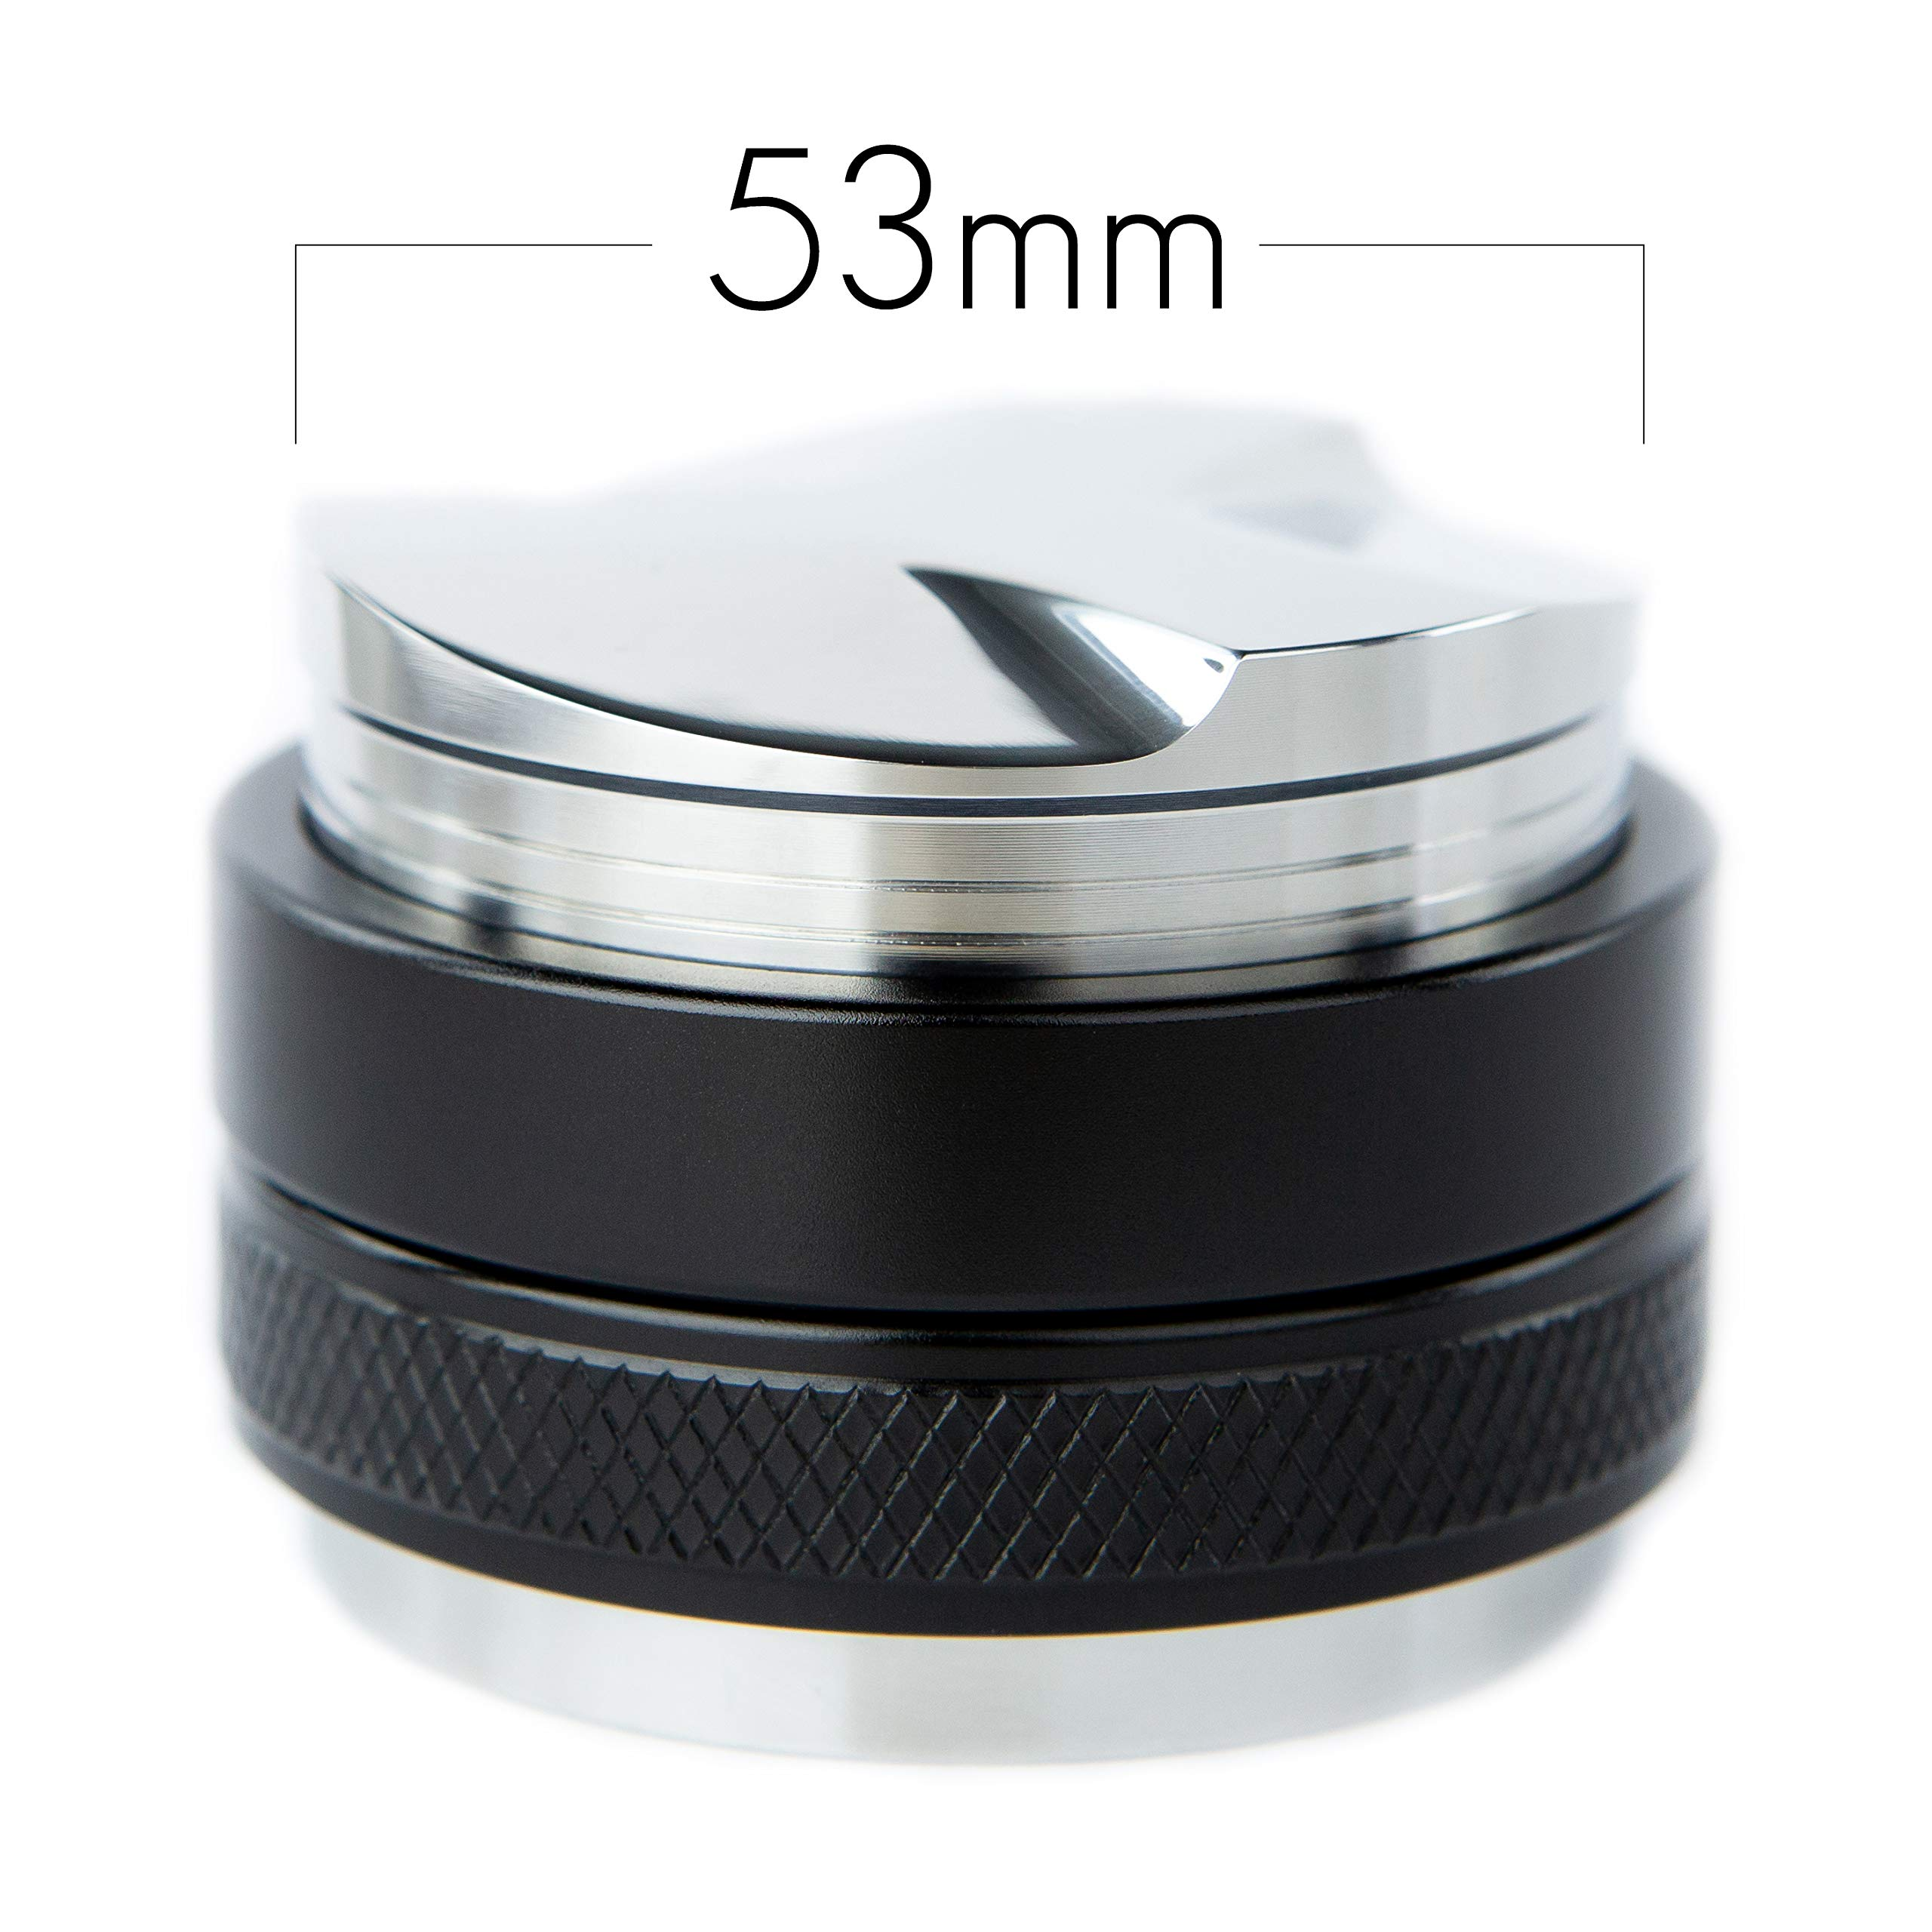 53mm Coffee Distributor/Leveler & Tamper, Fits 54mm Breville Portafilter, Double Sided, Adjustable Depth by Crema Coffee Products